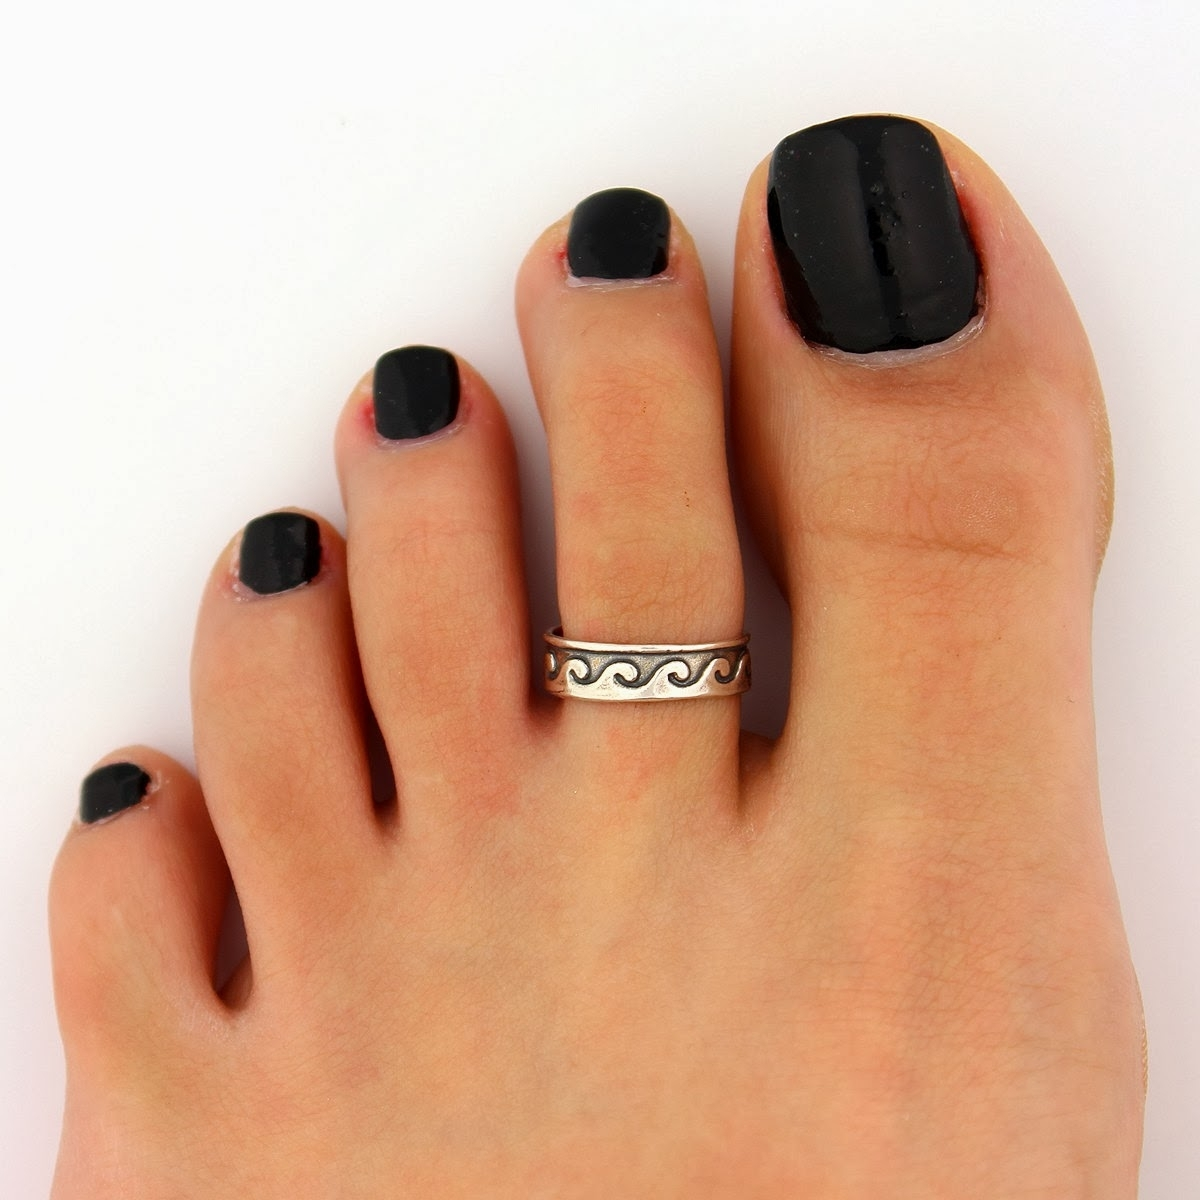 Girly Fashion Accessories: Toe Rings For Current Cute Toe Rings (View 7 of 15)